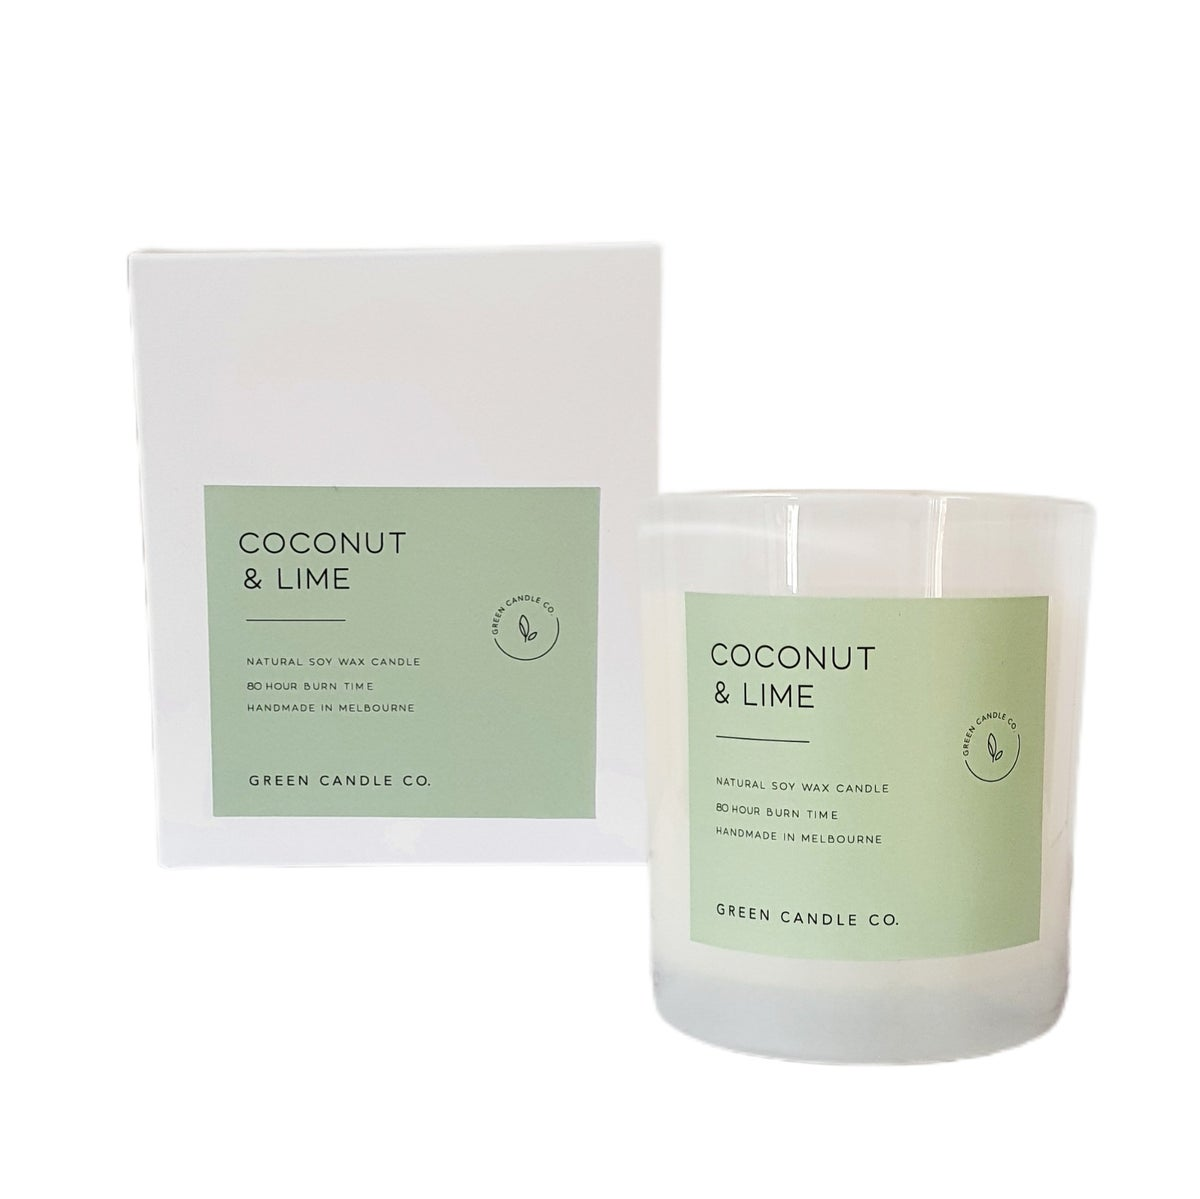 Image of COCONUT & LIME Candle / Large